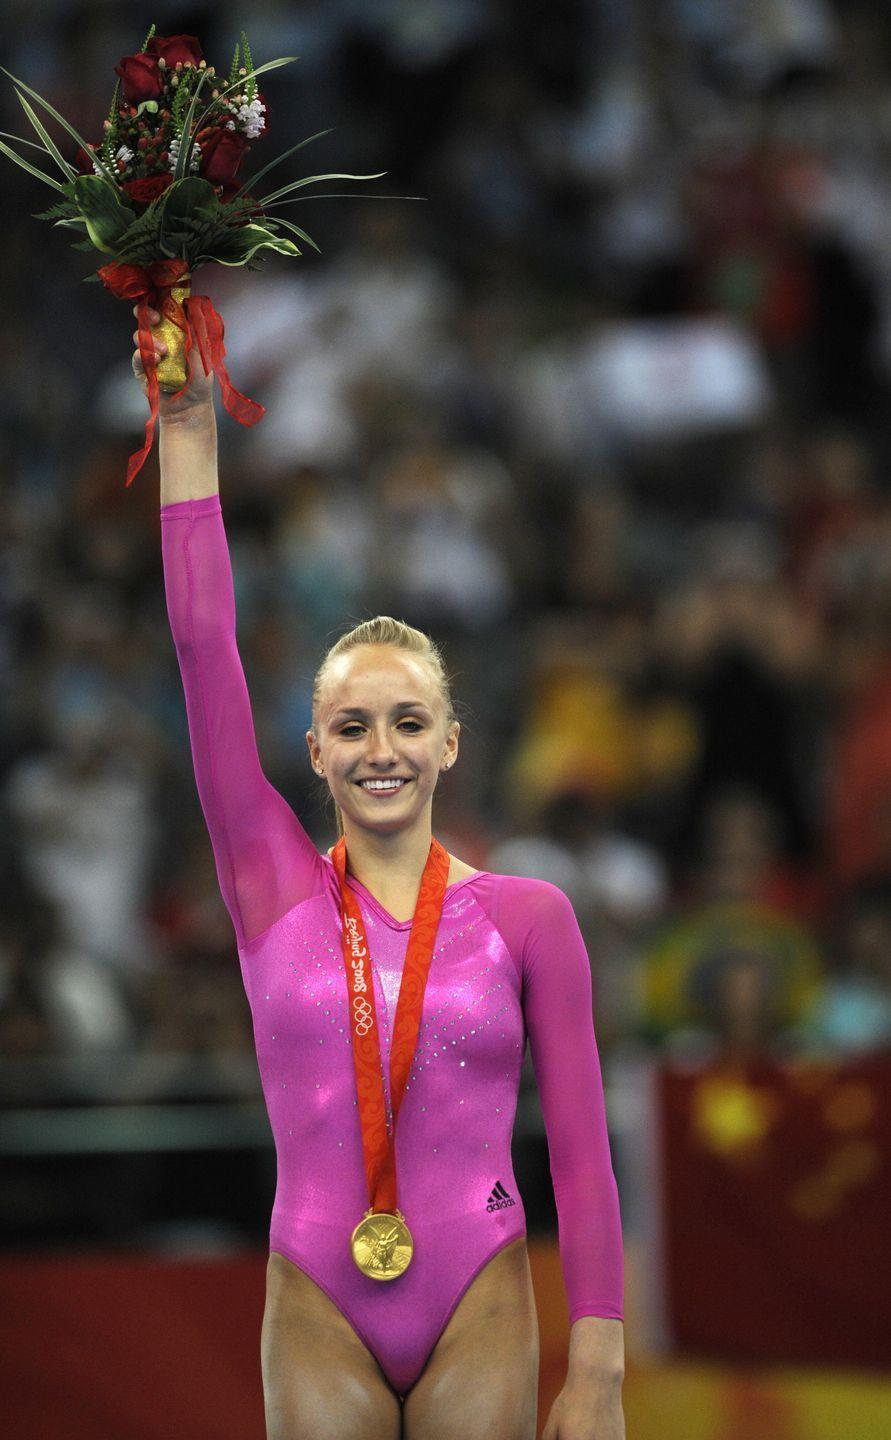 """<p>If there was ever a darling of United States gymnastics, it was Nastia Liukin. The gymnast, whose father is former Olympic athlete Valeri Liukin, competed for the first time on the Olympic stage at the 2008 Summer Games in Beijing. It was there that she took home <a href=""""https://www.britannica.com/biography/Nastia-Liukin"""" rel=""""nofollow noopener"""" target=""""_blank"""" data-ylk=""""slk:five Olympic medals"""" class=""""link rapid-noclick-resp"""">five Olympic medals</a>, including the individual all-around gold medal. </p>"""